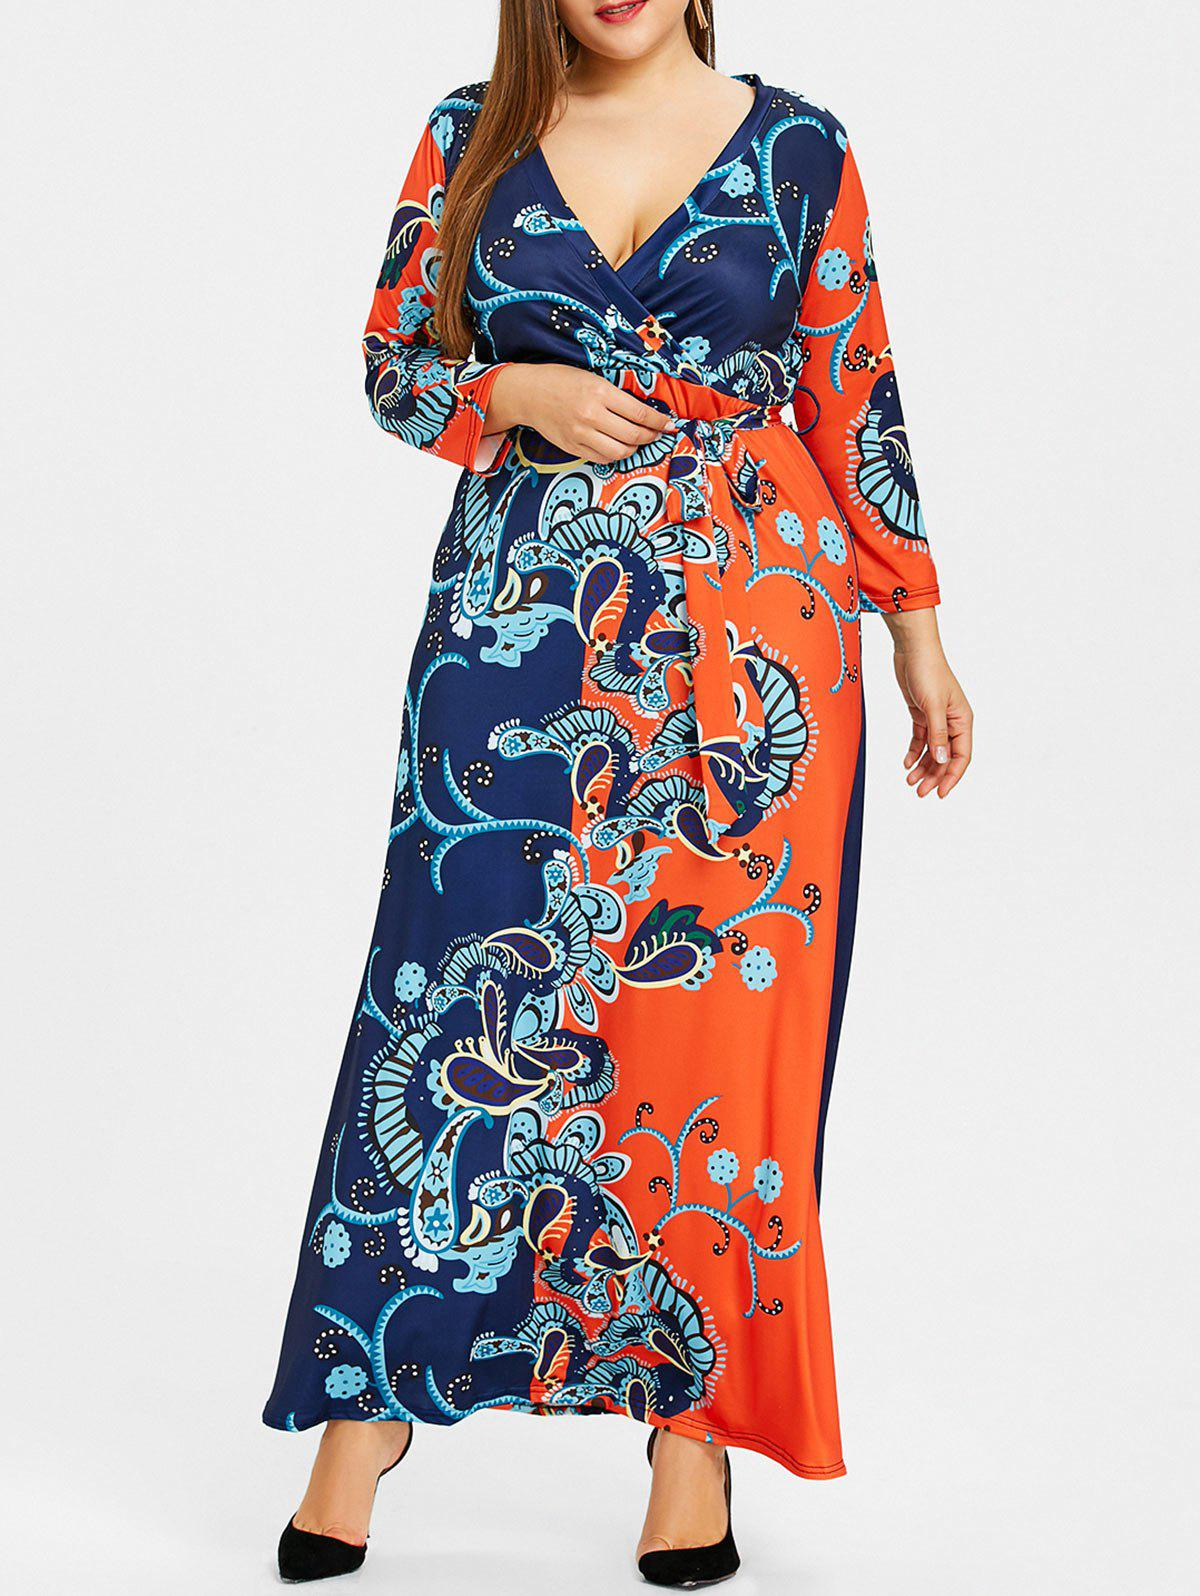 Affordable Surplice Ethnic Floral Print Plus Size Dress